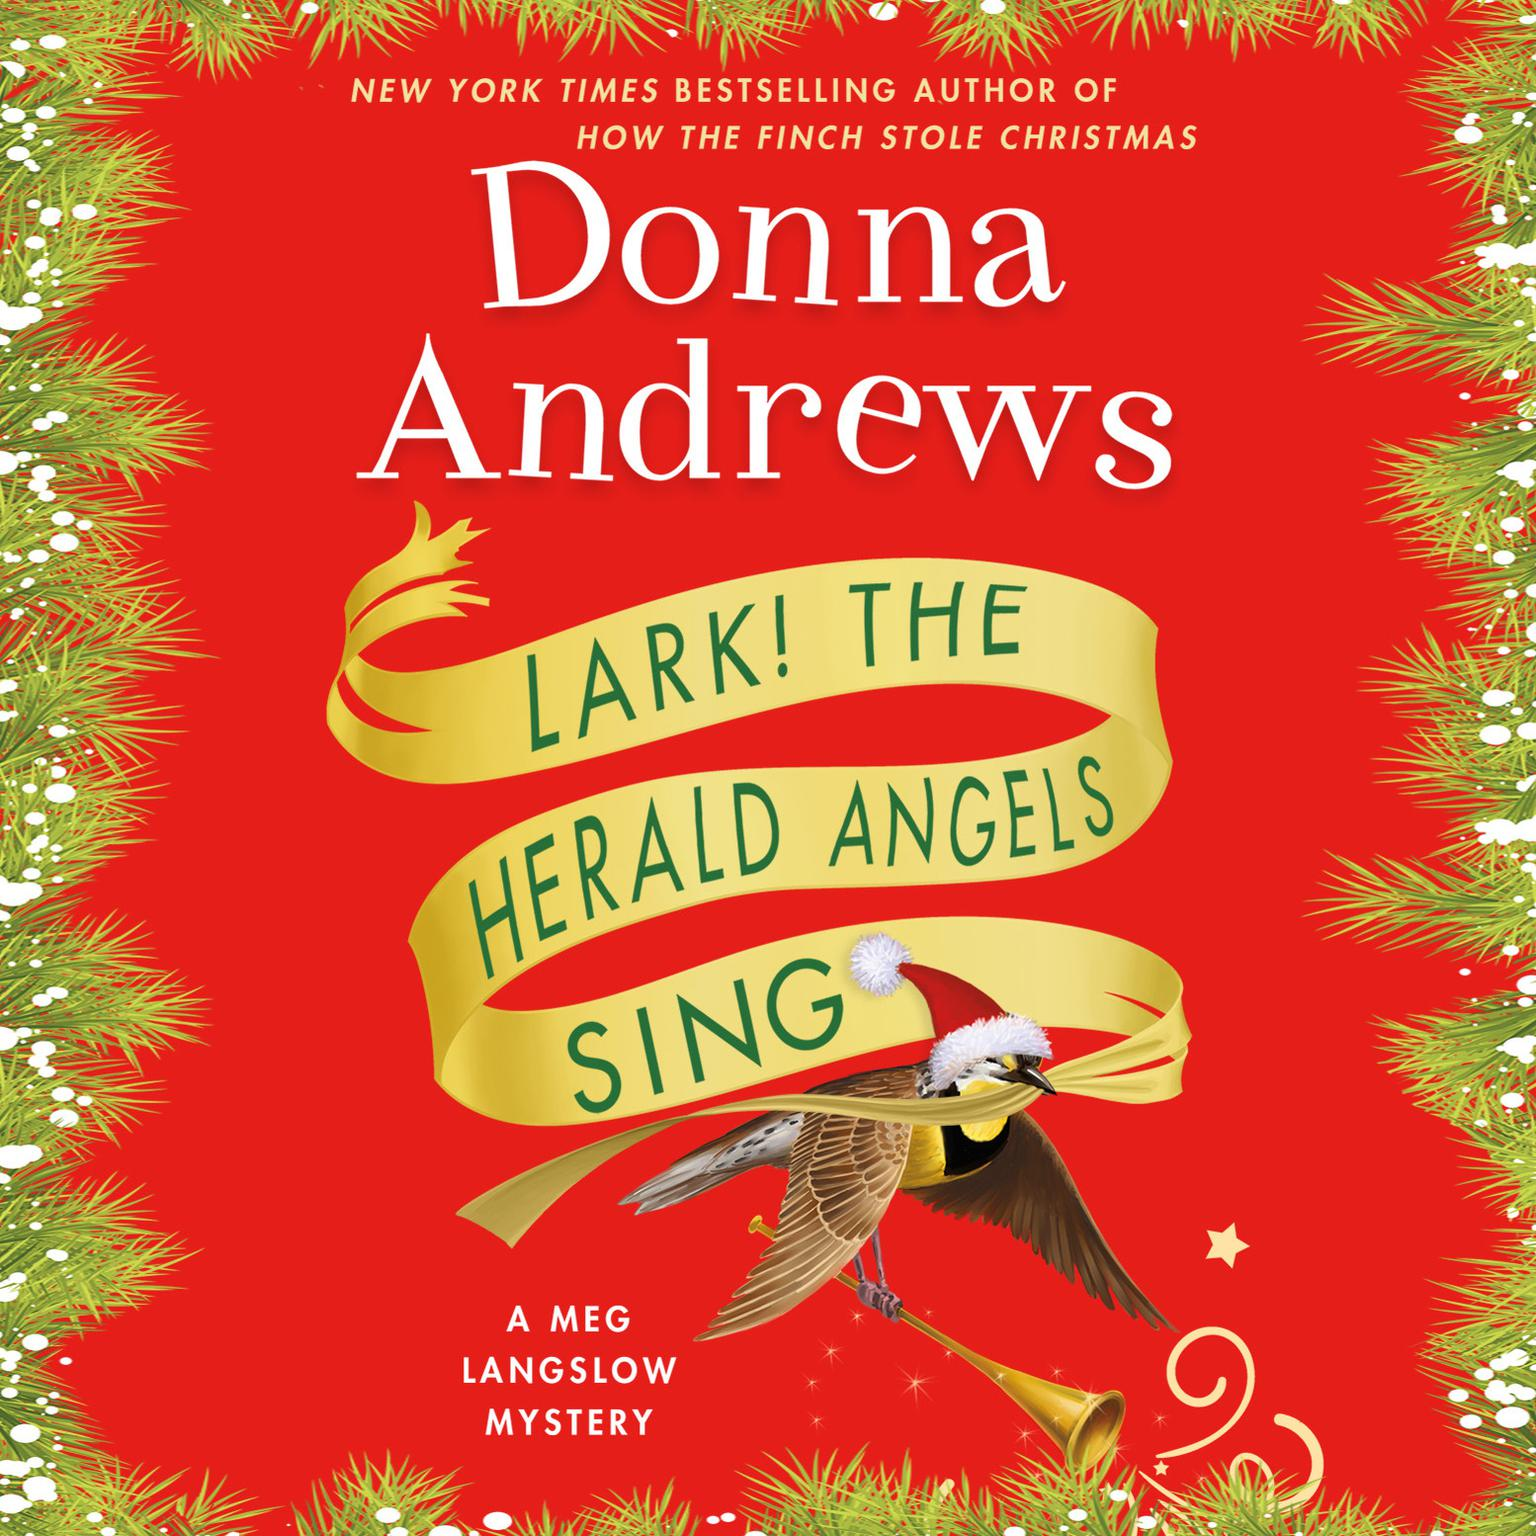 Printable Lark! The Herald Angels Sing Audiobook Cover Art